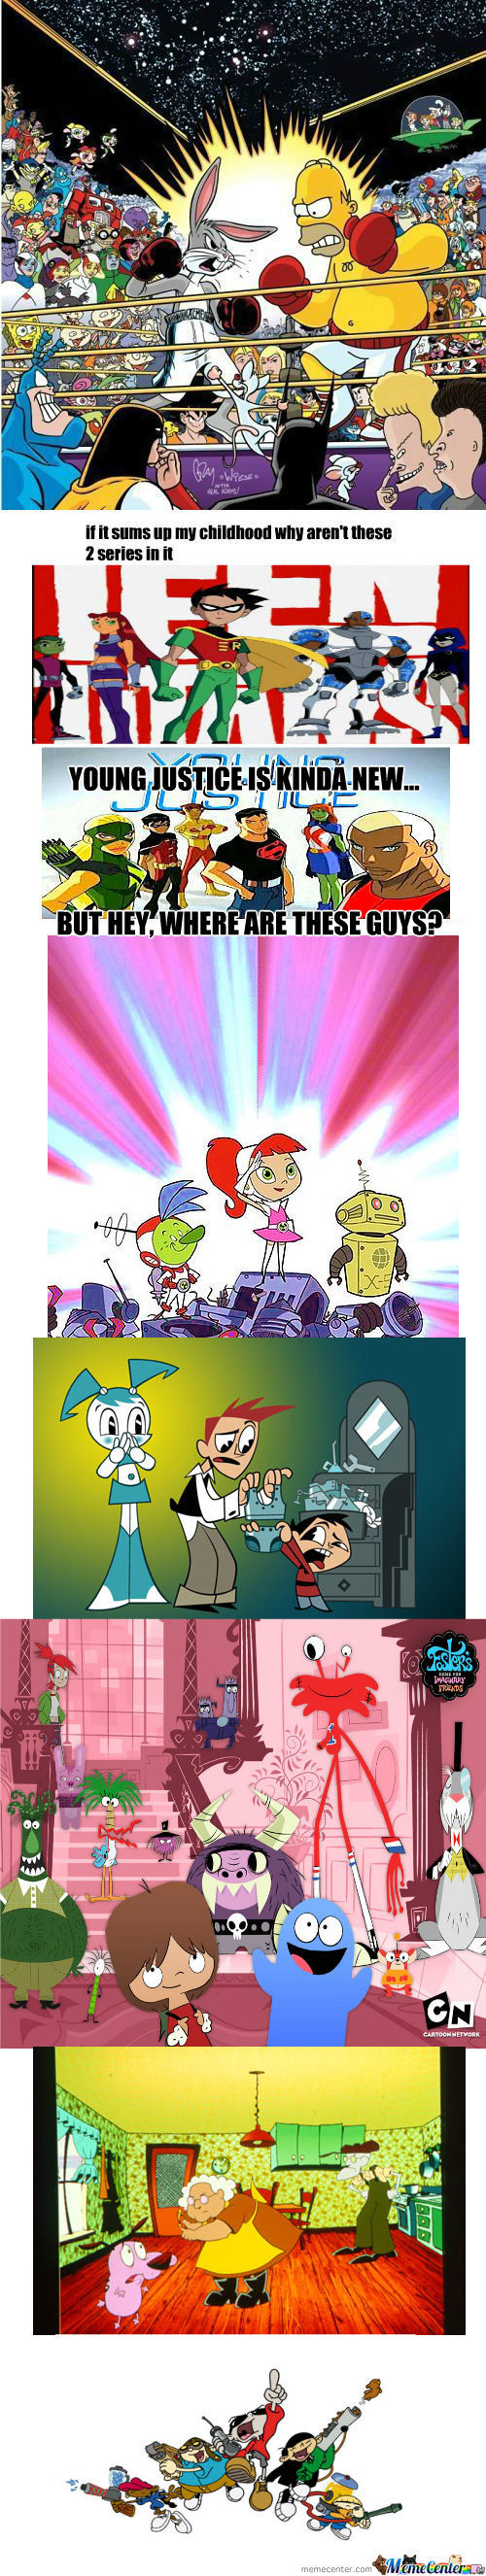 [RMX] [RMX] This One Picture Sums Up Our Childhood...